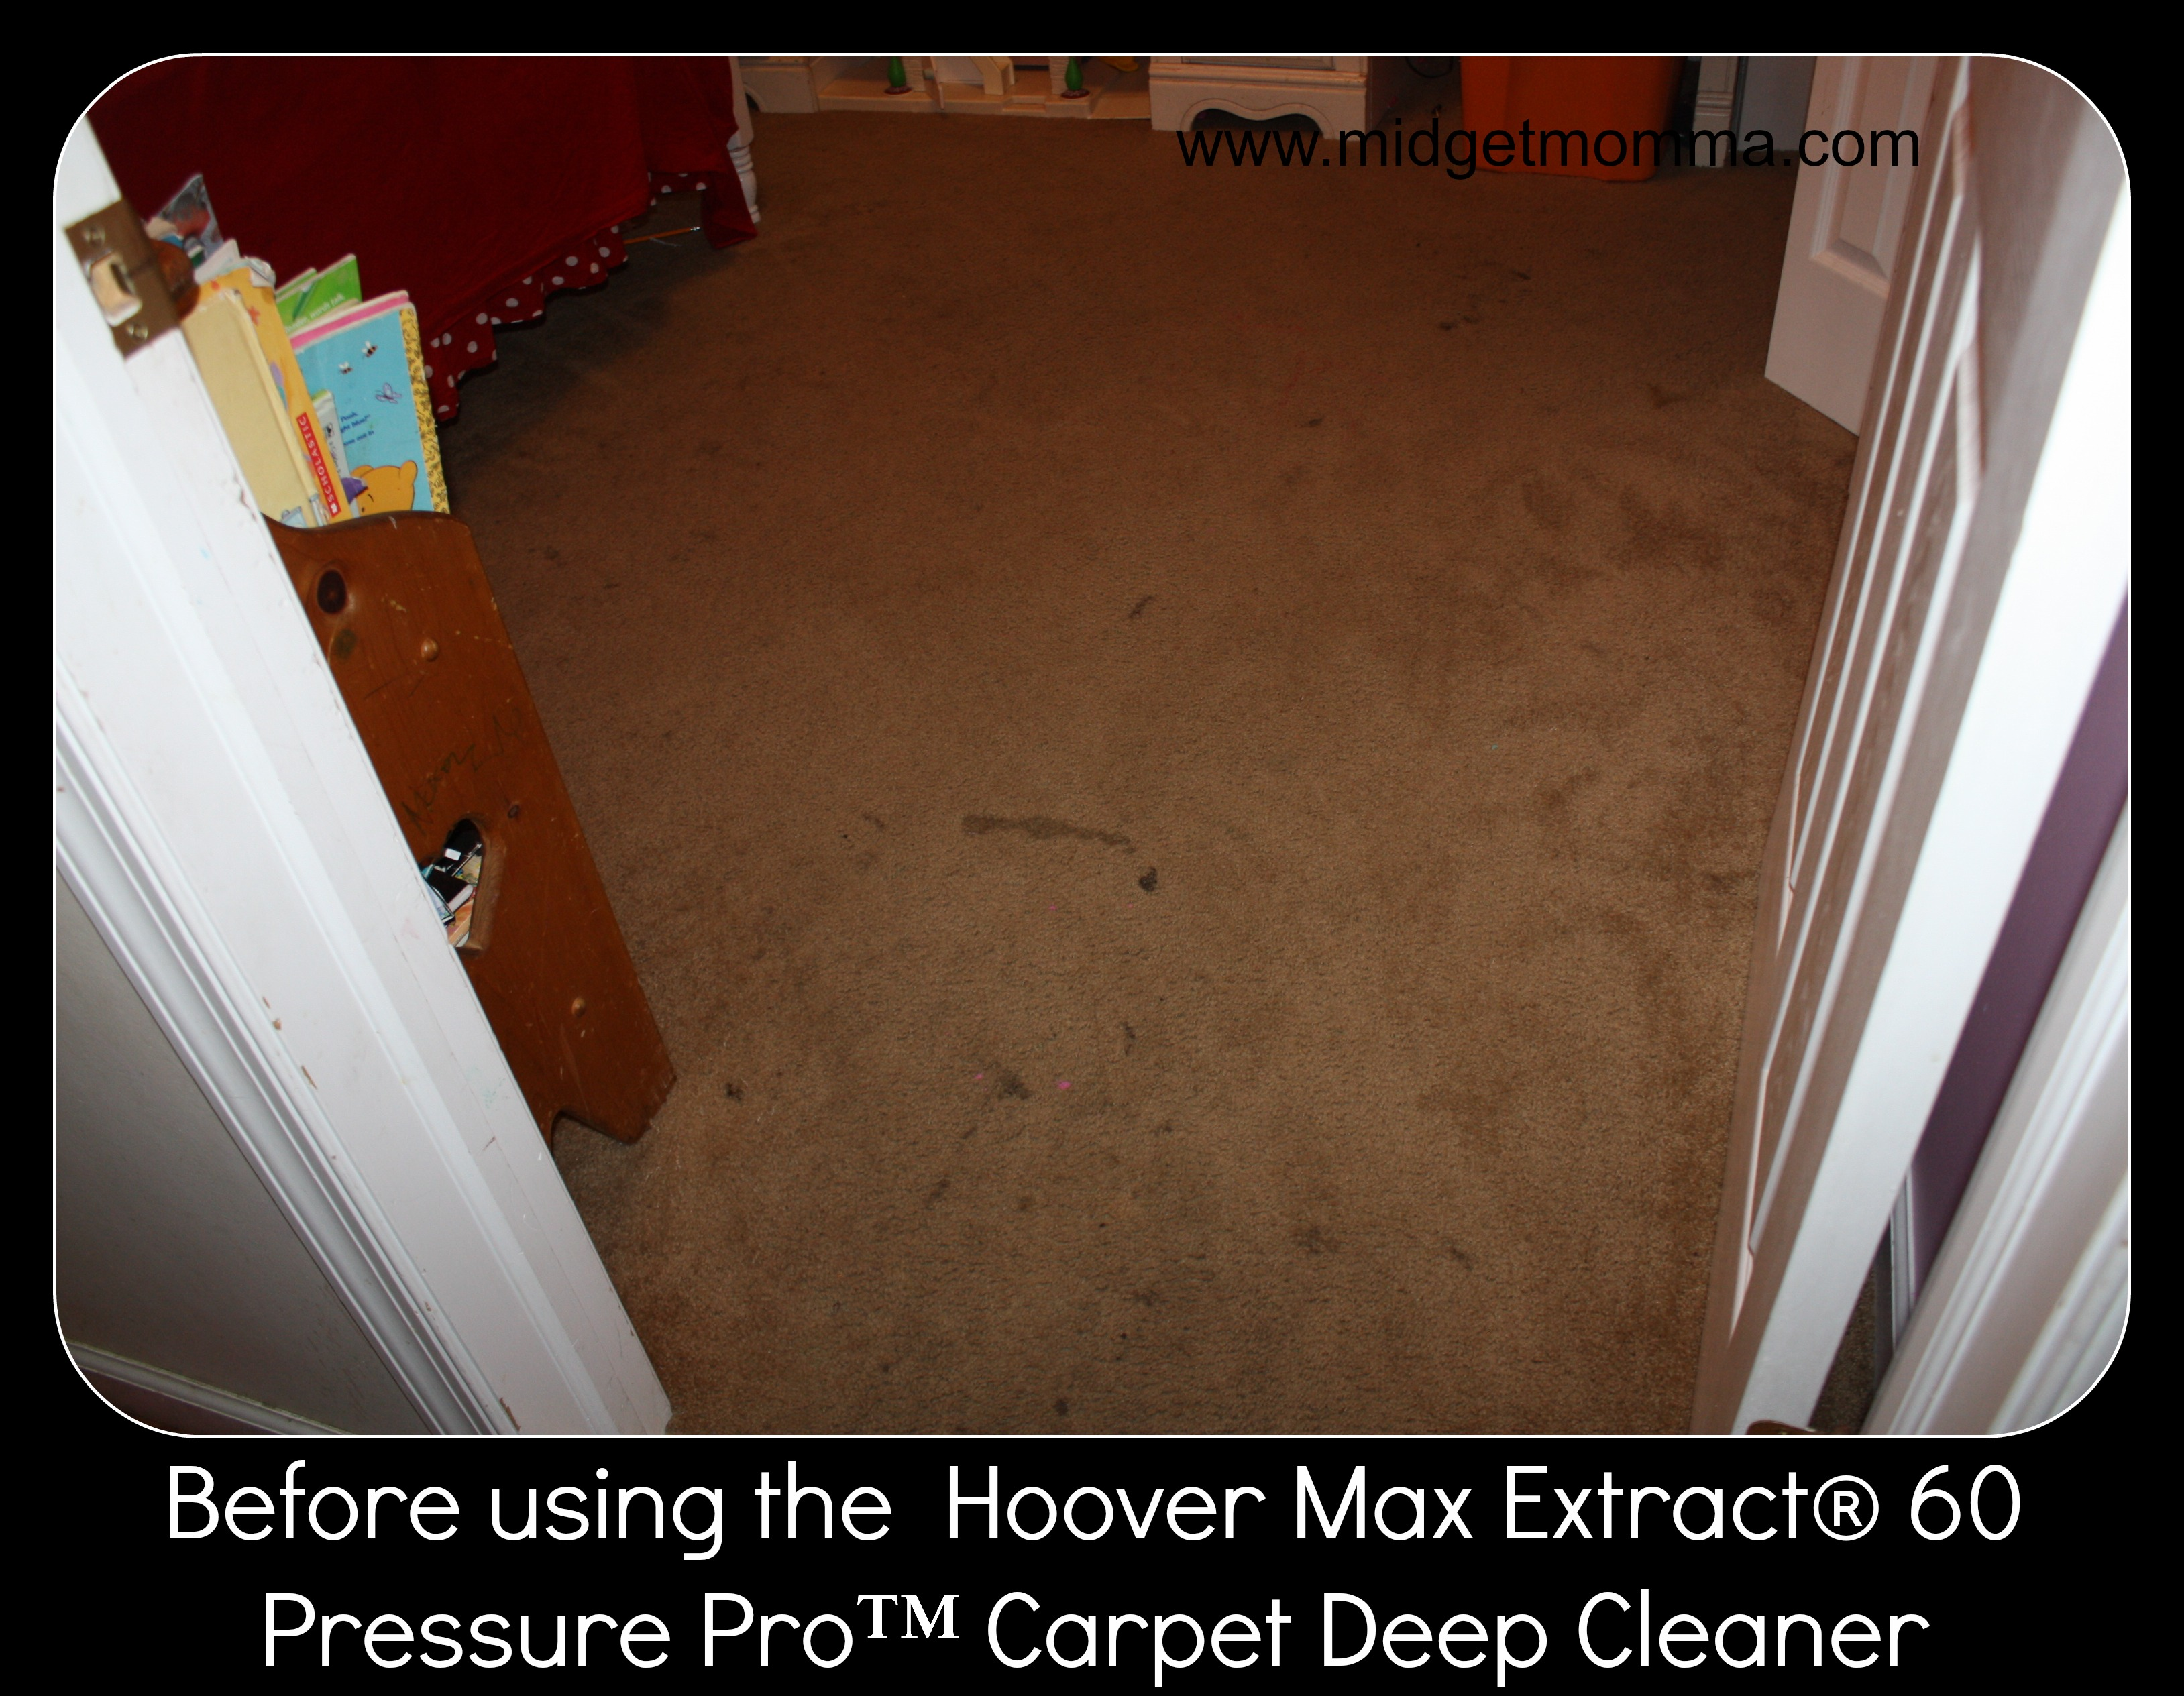 Get the Dirt out of Your Carpets with The Hoover Max Extract 60